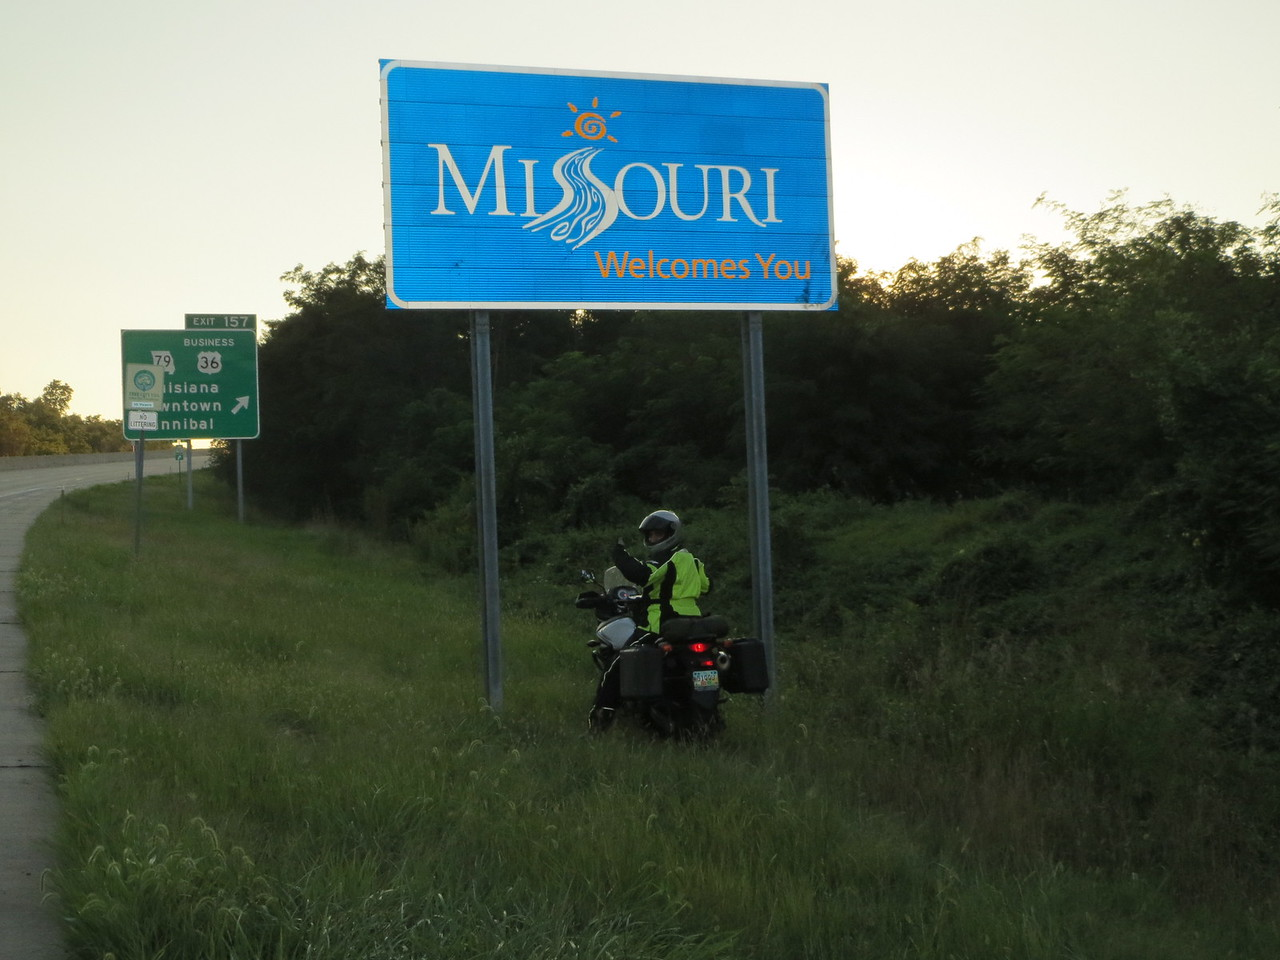 Day 1 (681 miles): Me at the other MO state line sign